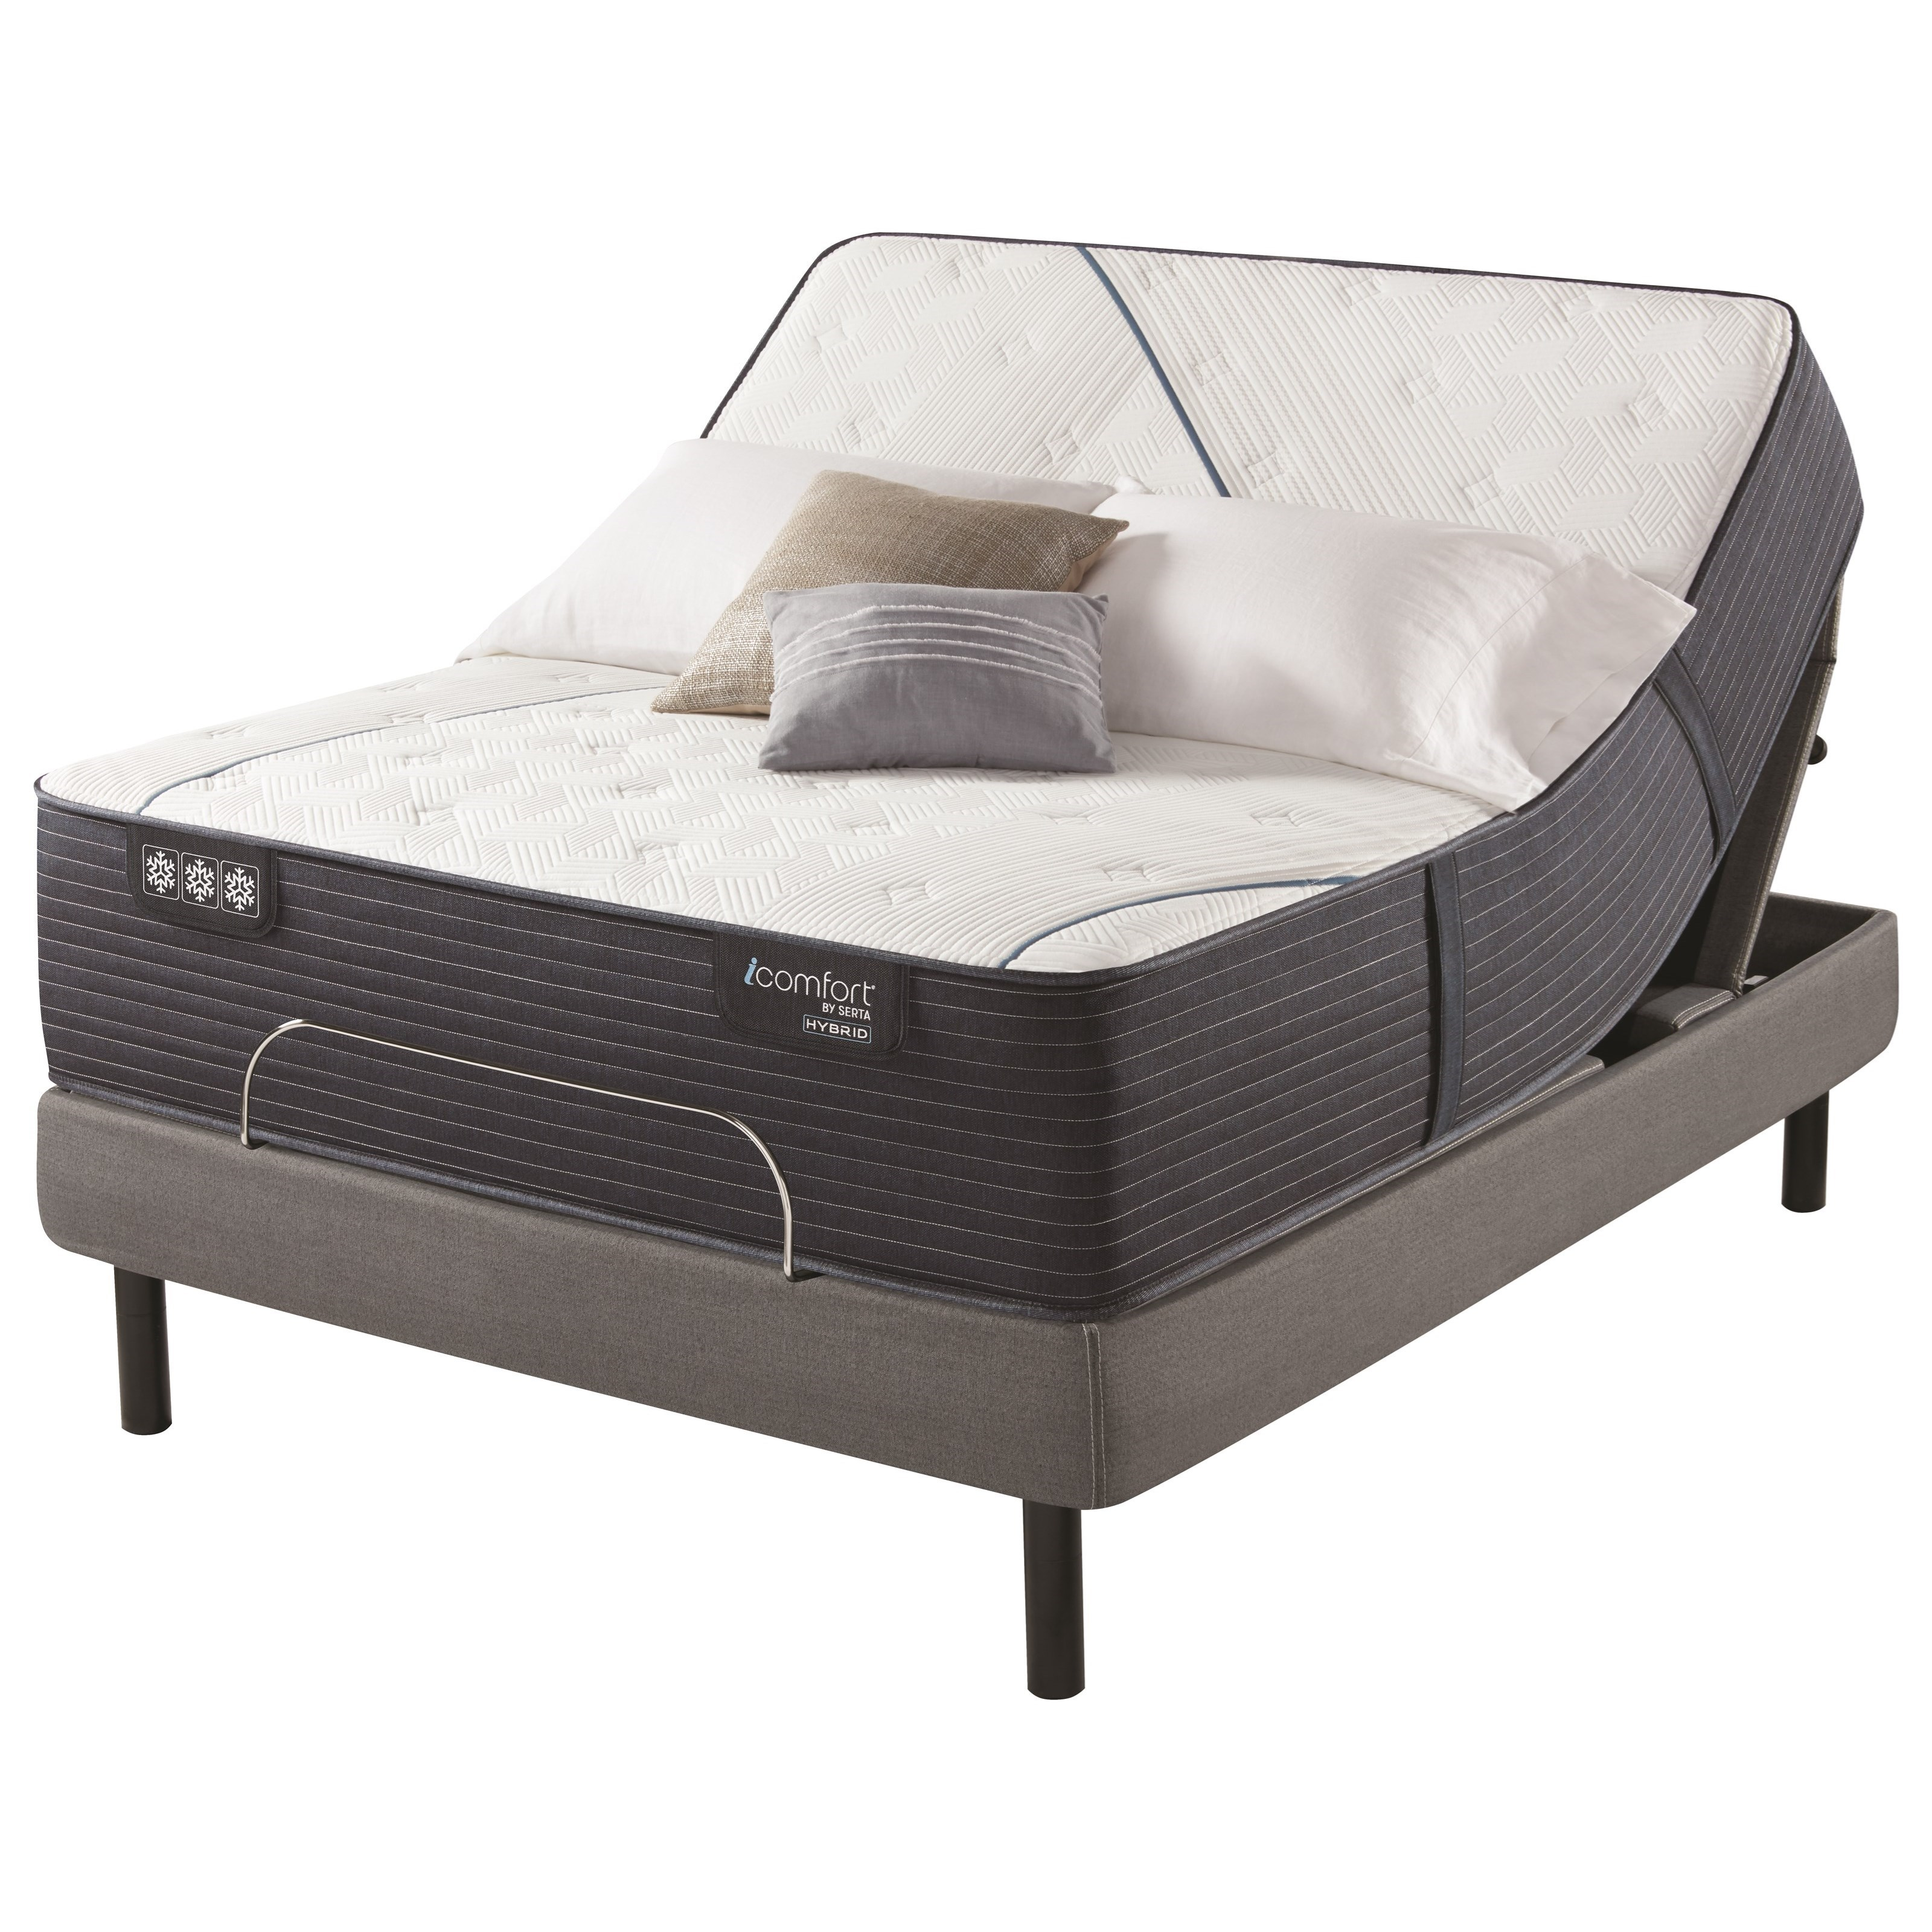 "CF4000 Quilted Hybrid II Extra Firm King 14 3/4"" Extra Firm Hybrid Adj Set by Serta at Prime Brothers Furniture"